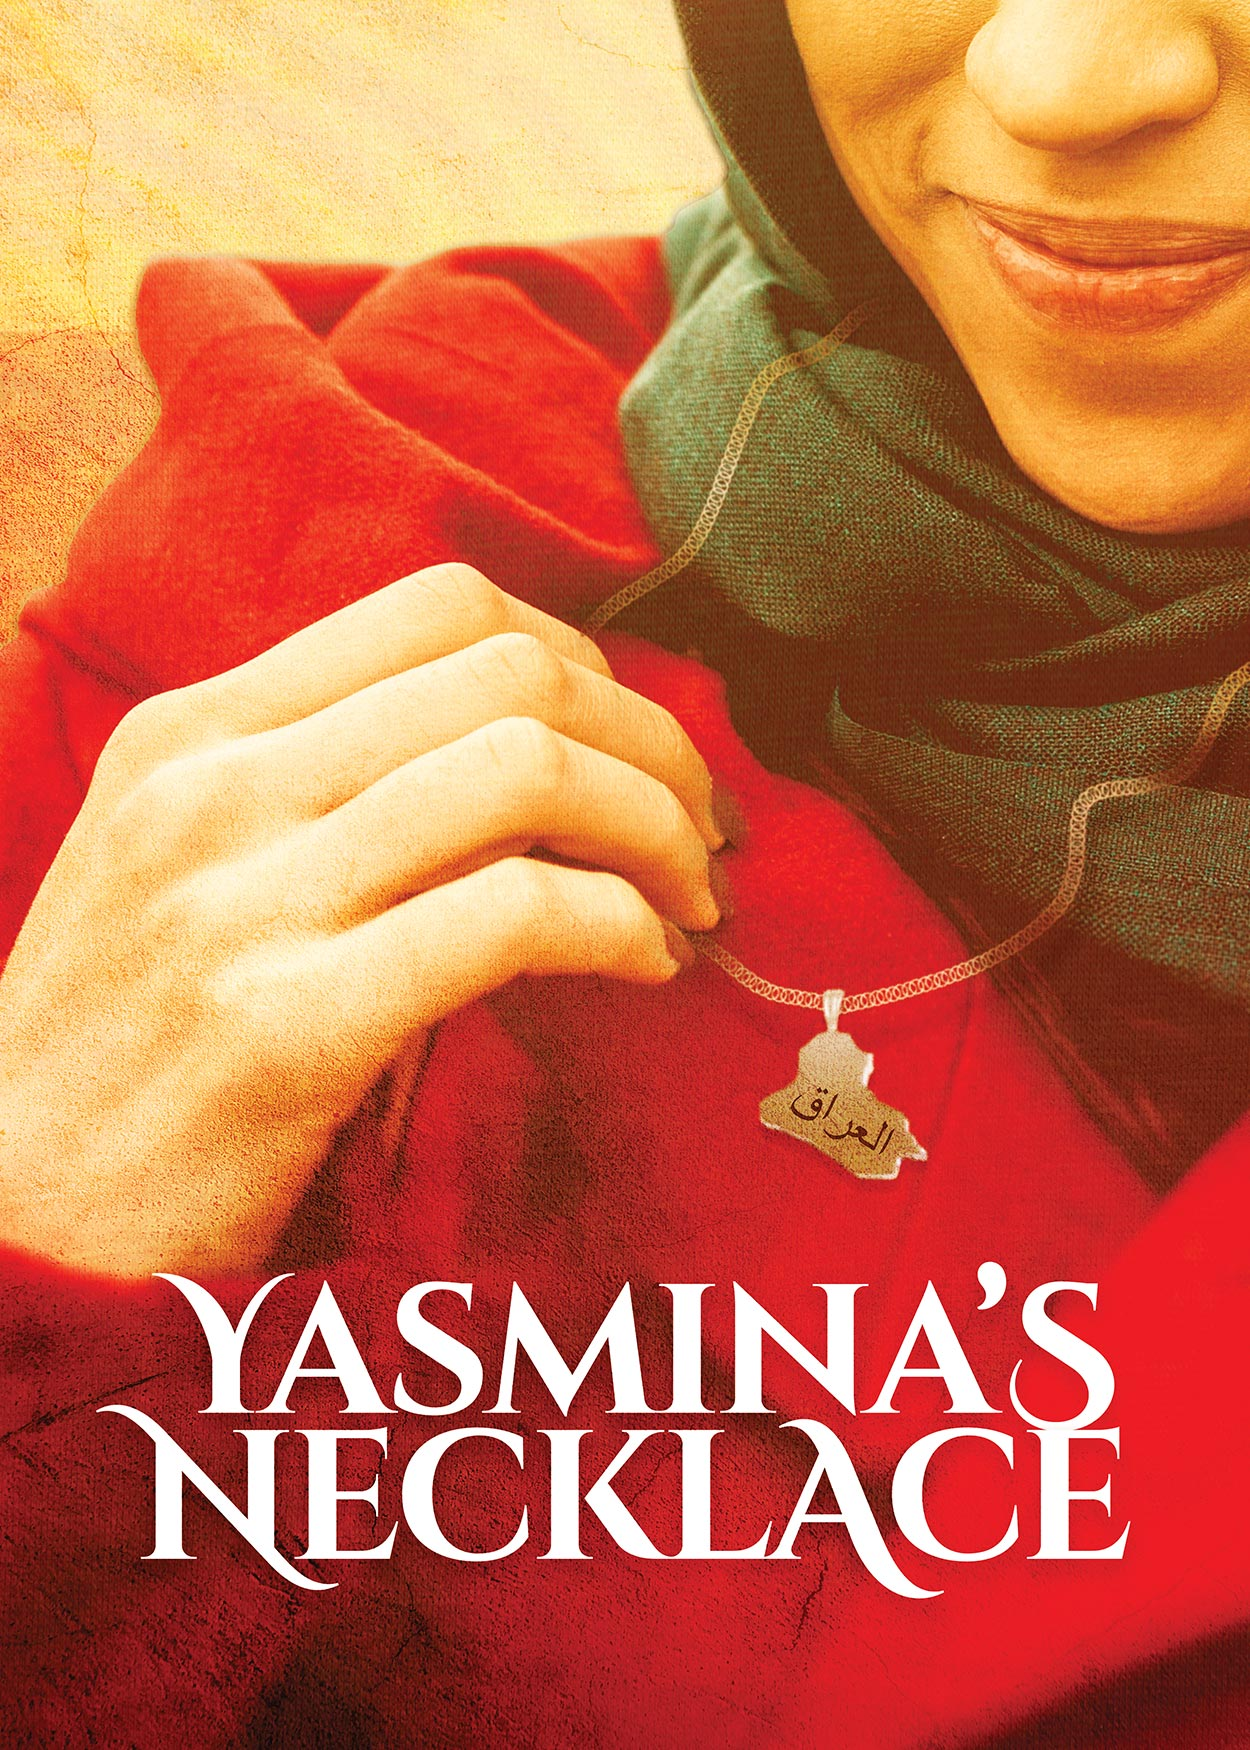 Key Art from Yasmina's Necklace (2019). An image of a woman wearing a gray hijab and red jacket. The image is cut off right above the woman's nose. She is holding a necklace she is wearing. The charm on the necklace is in the shape of Iraq.